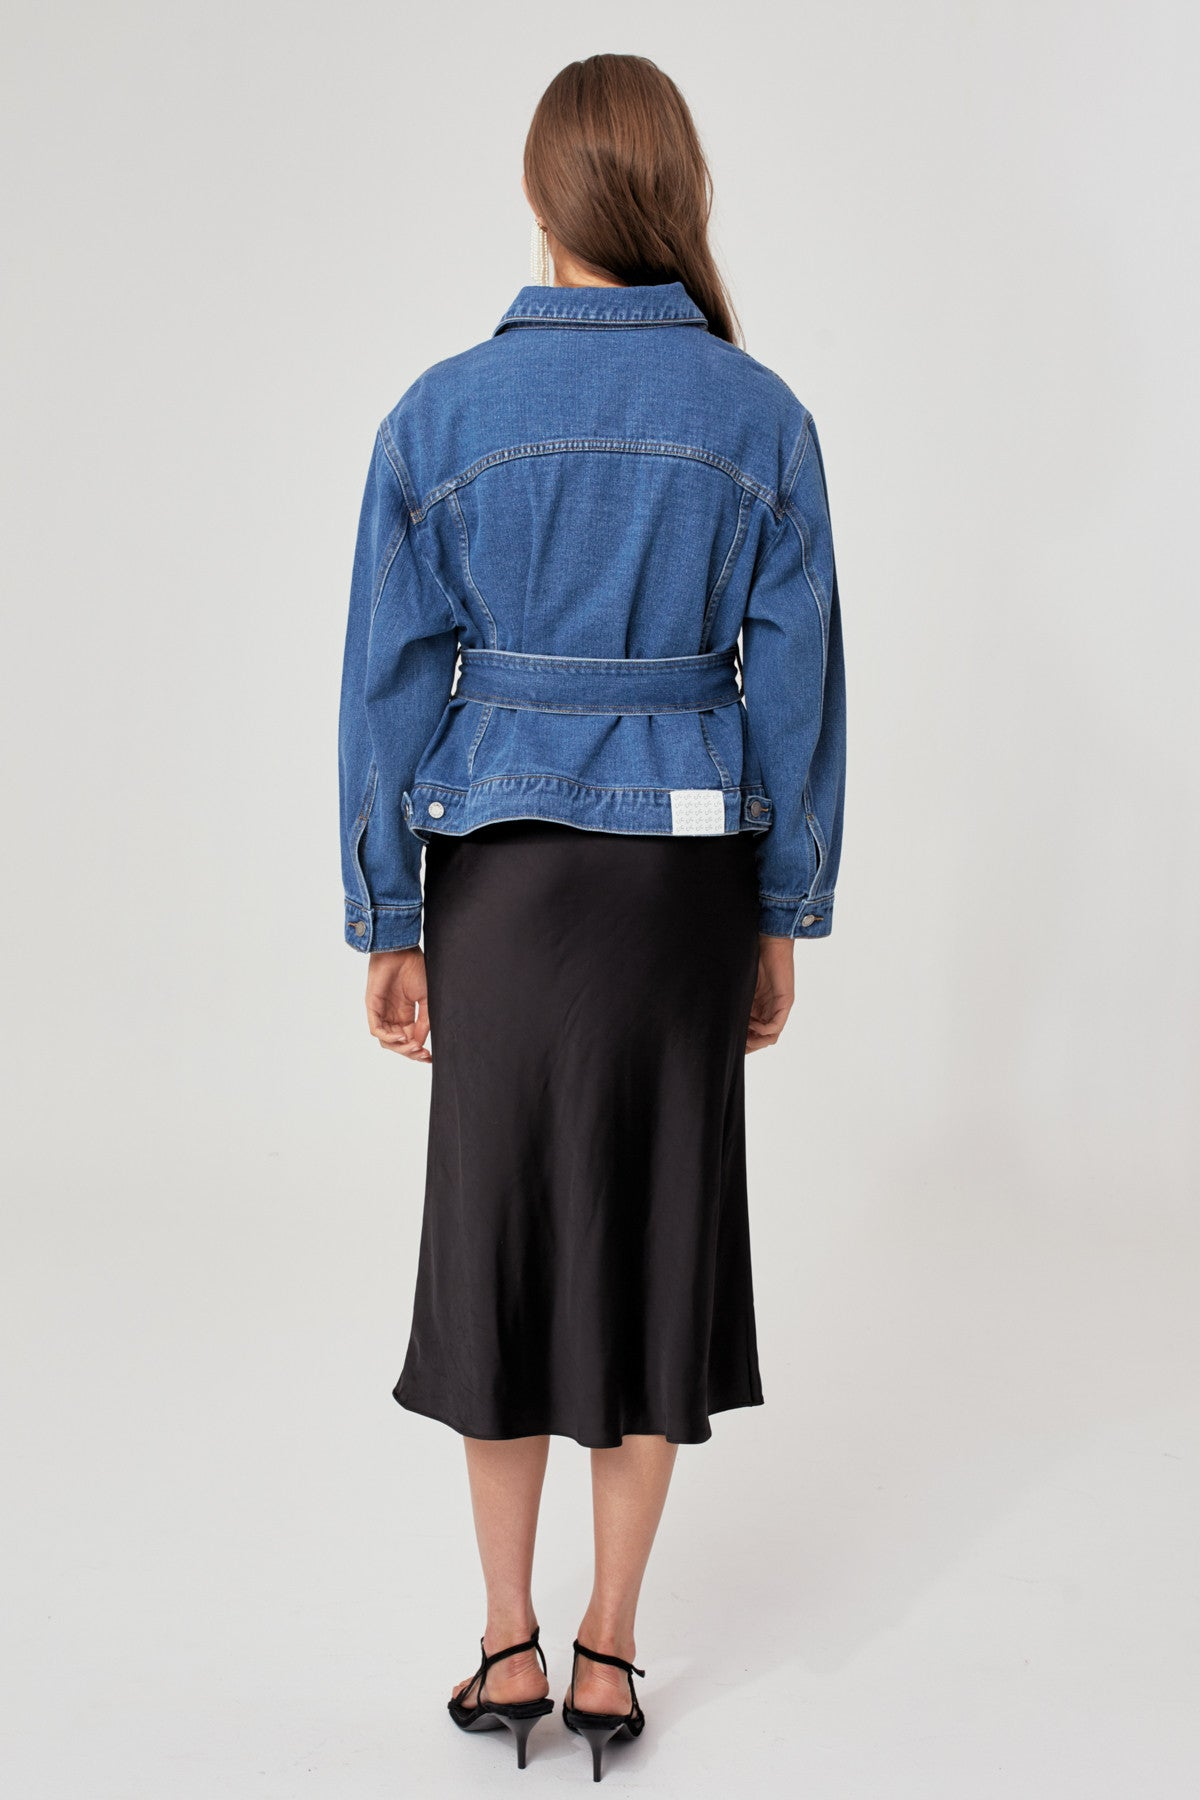 LIFETIME JACKET blue denim